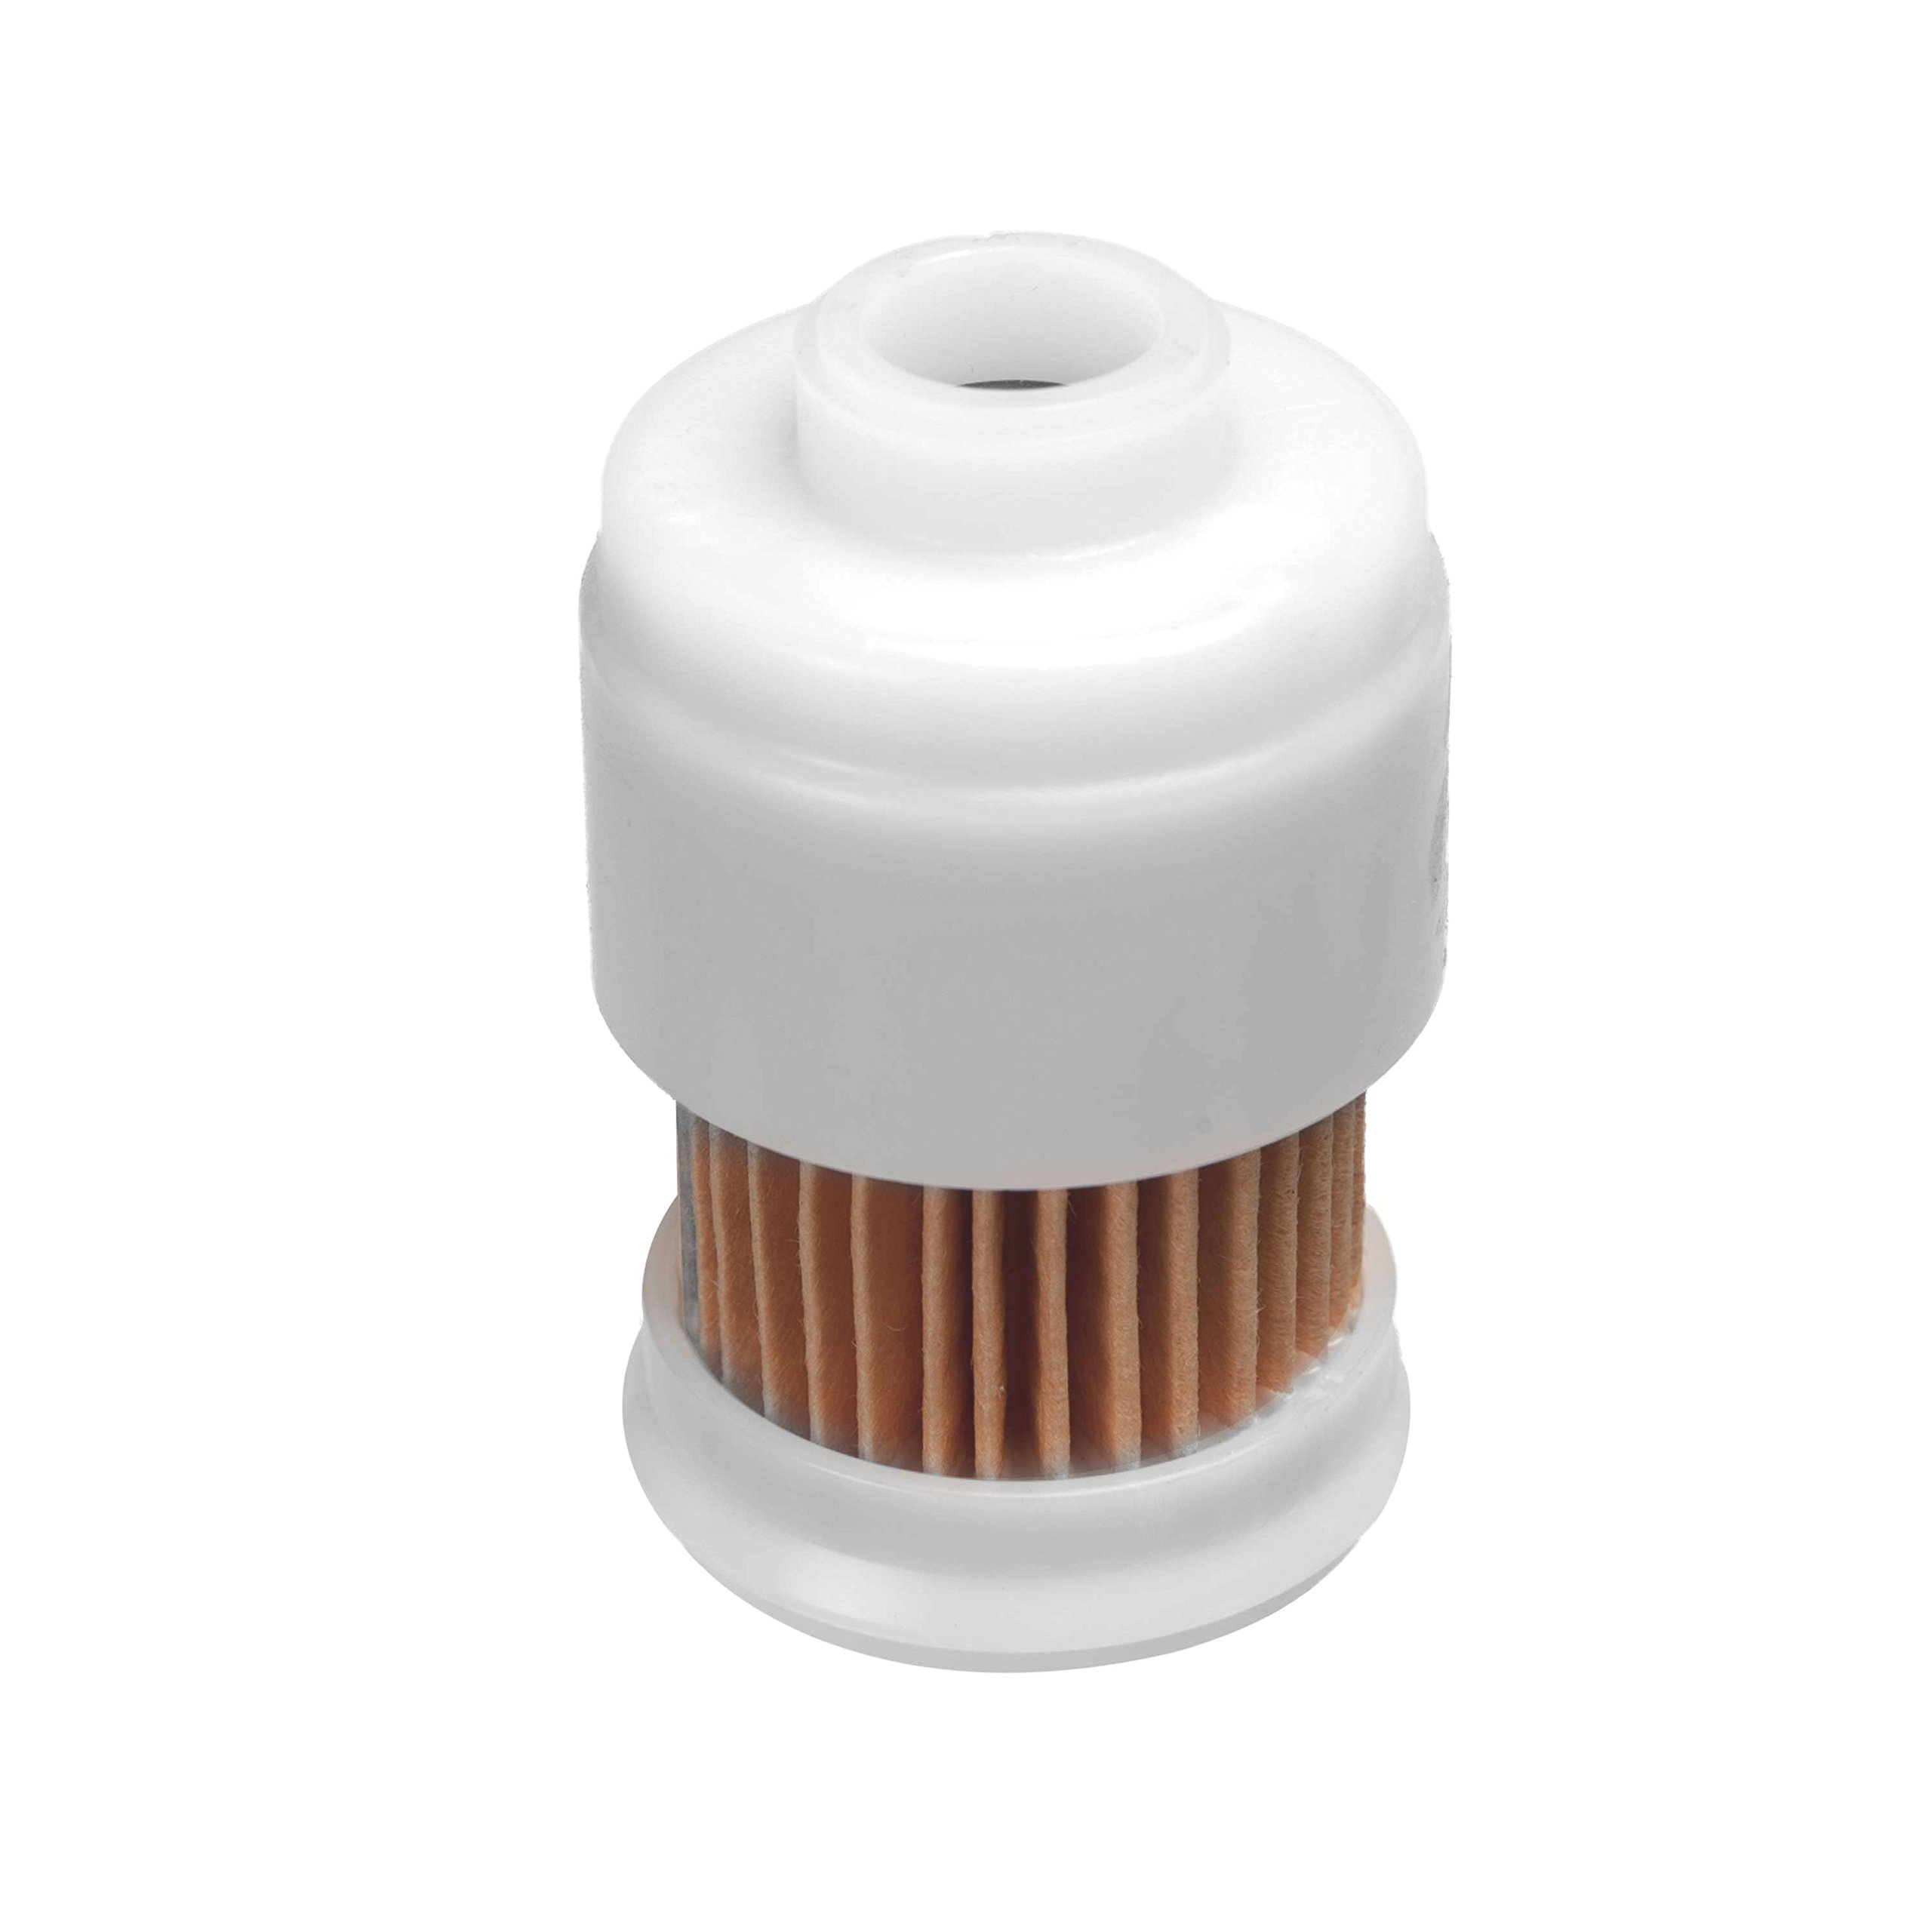 Sierra 18-79980 Yamaha Fuel Filter - Replaces 68F-24563-00